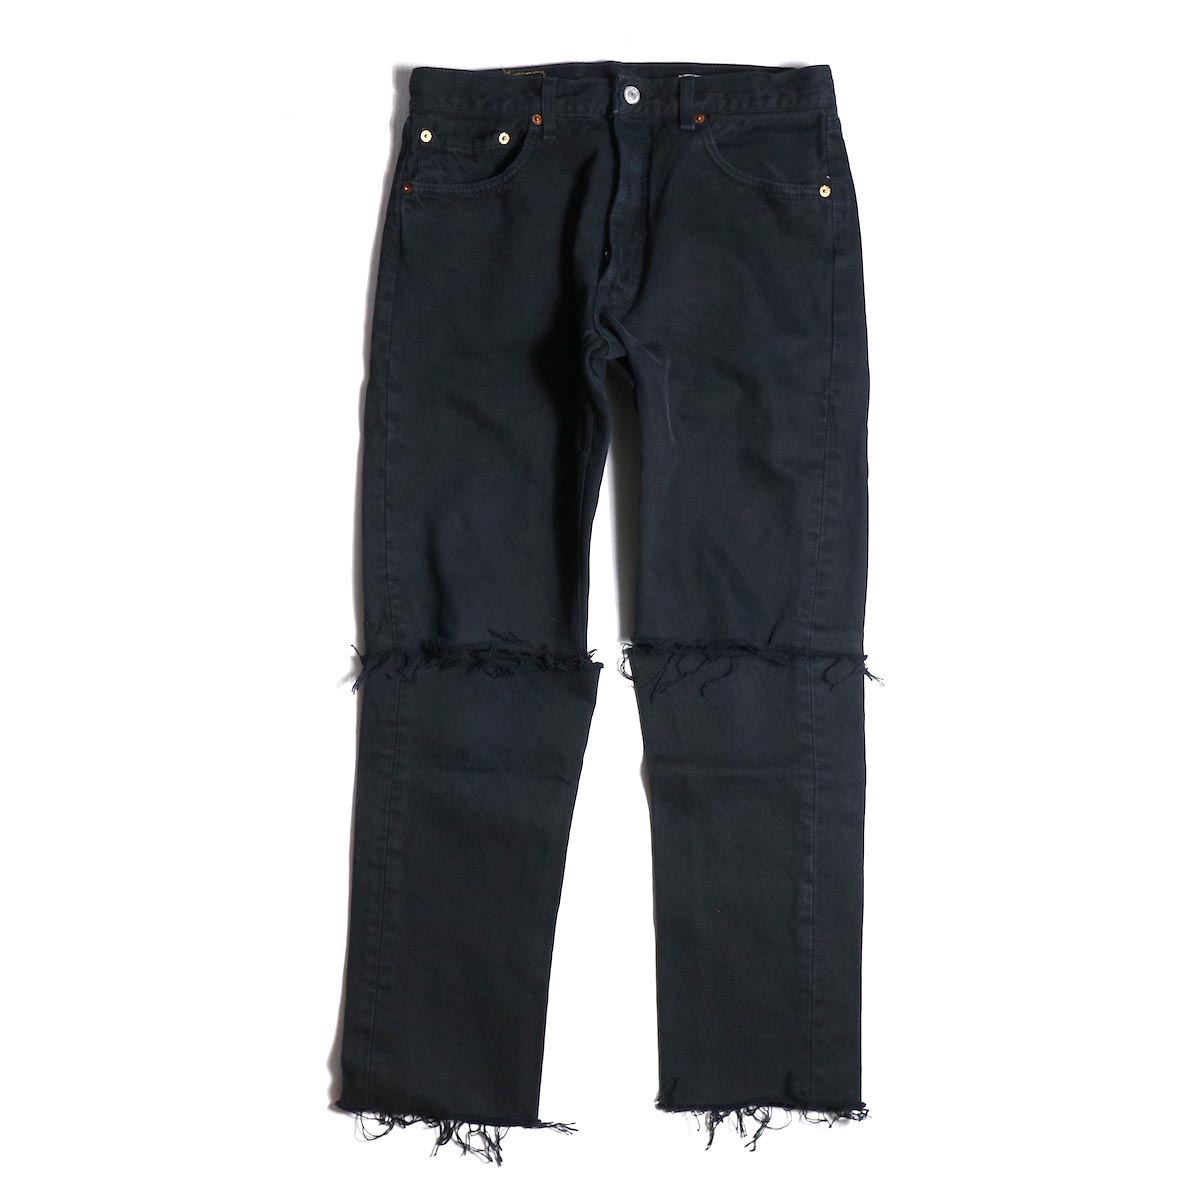 OLD PARK / 2WAY JEANS (Msize)